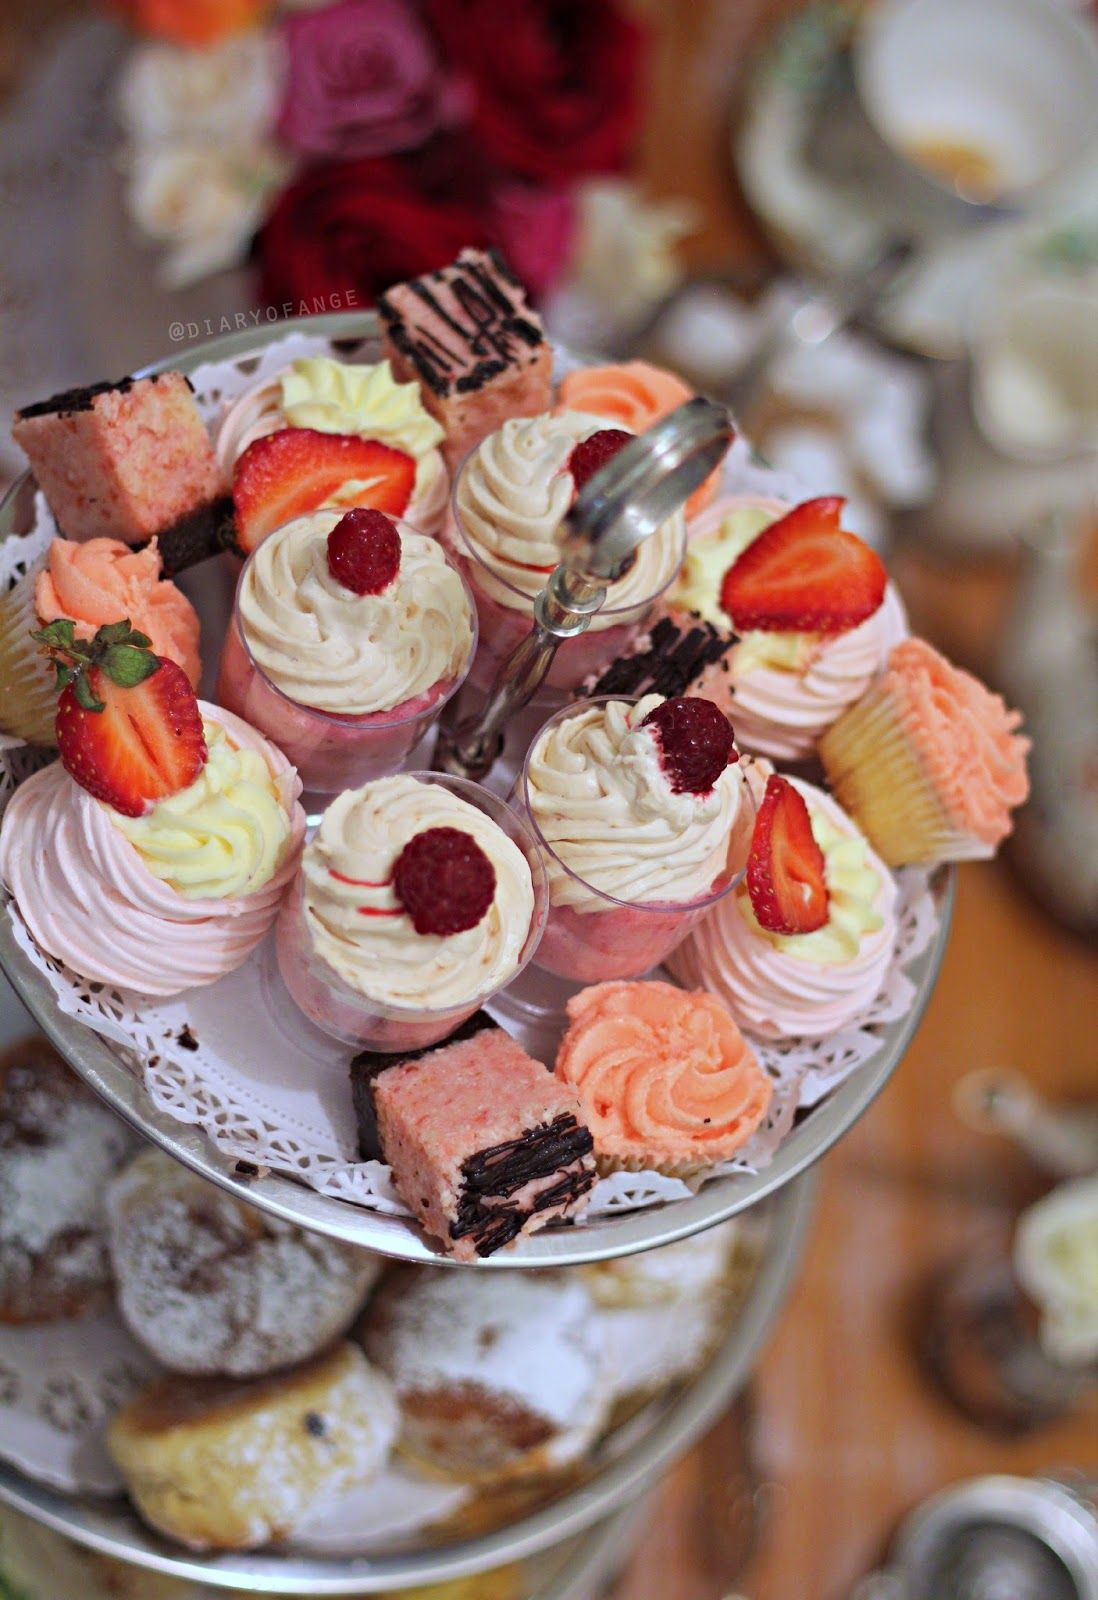 Diary of Ange: Maddison Cottage Guildford High Tea french pink Marie Antoinette style cakes and cupcakes  http://www.diary-of-ange.com/2015/03/maddison-cottage-guildford-high-tea.html